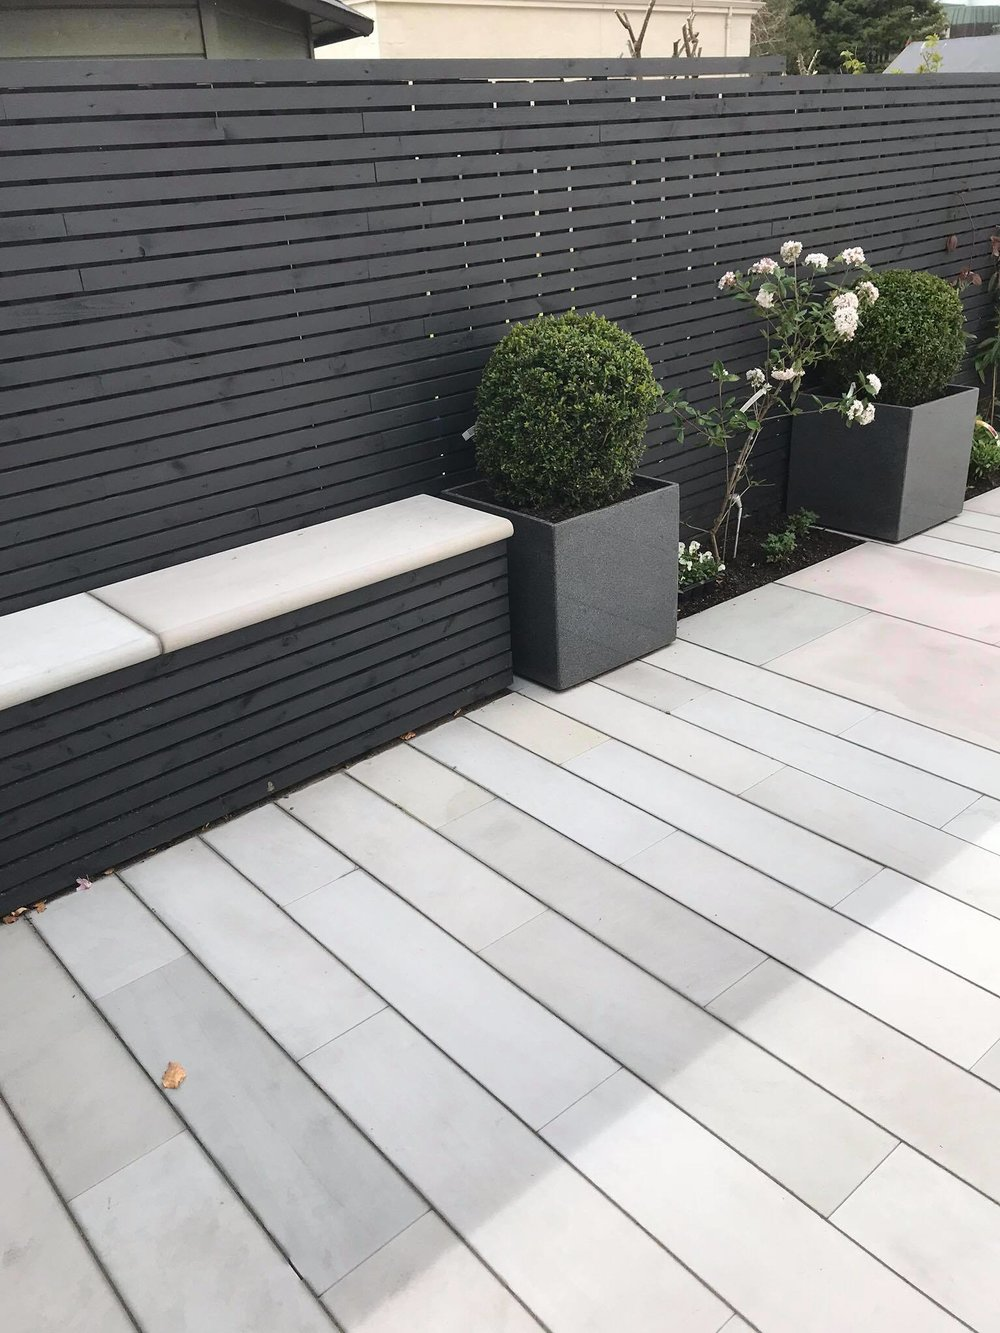 Gunmetal grey contemporary fence and seat facade for a courtyard garden in Eaglesham with smooth grey sandstone plank paving